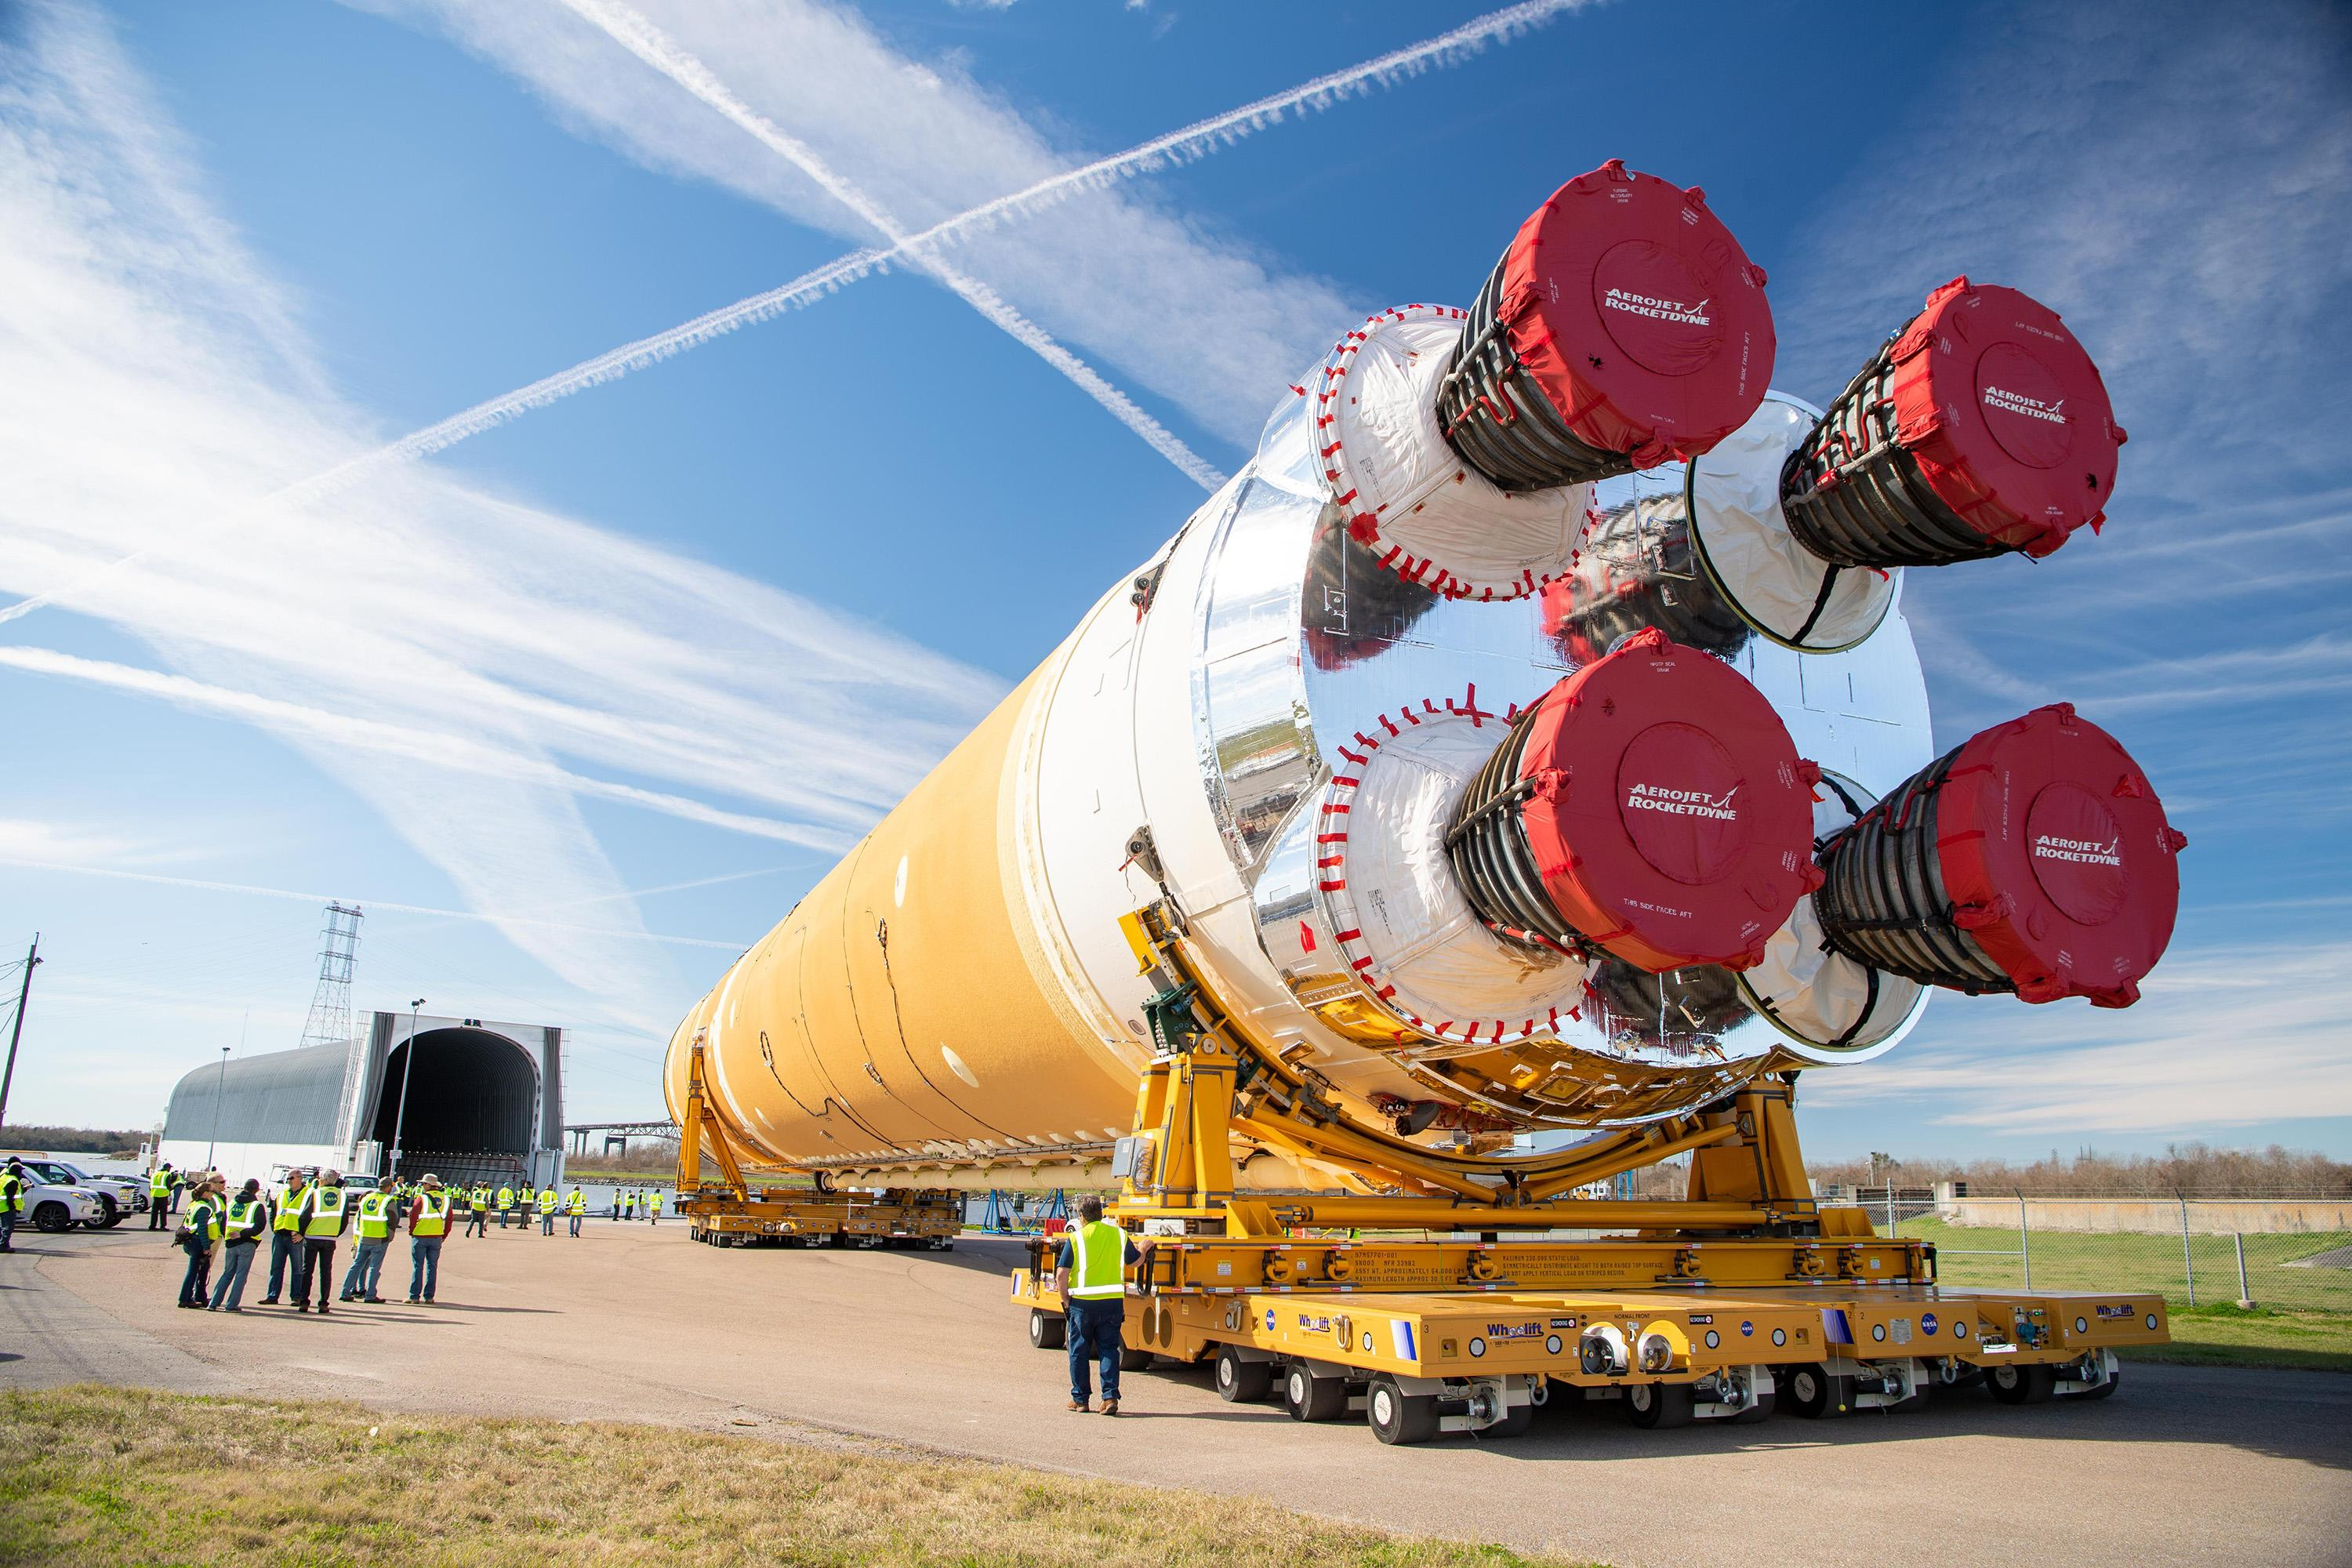 NASA's Monster Rocket Is Again Behind Its Schedule